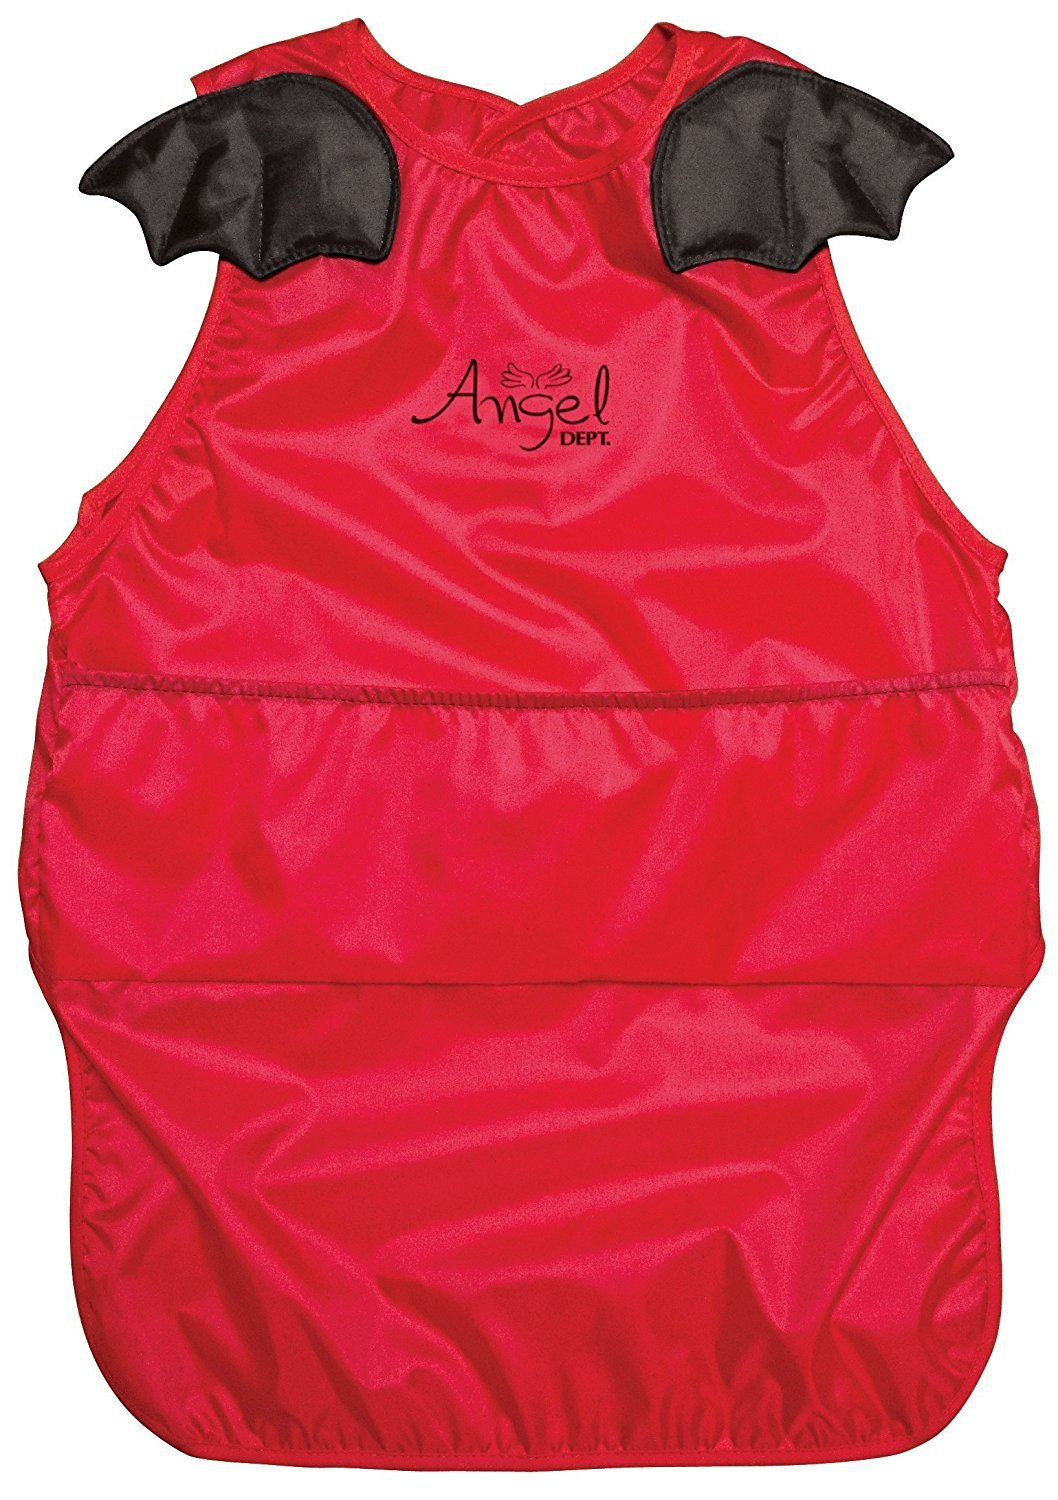 Angel DEPT Baby Toddler Sleeveless Feeding Apron (L, RED)